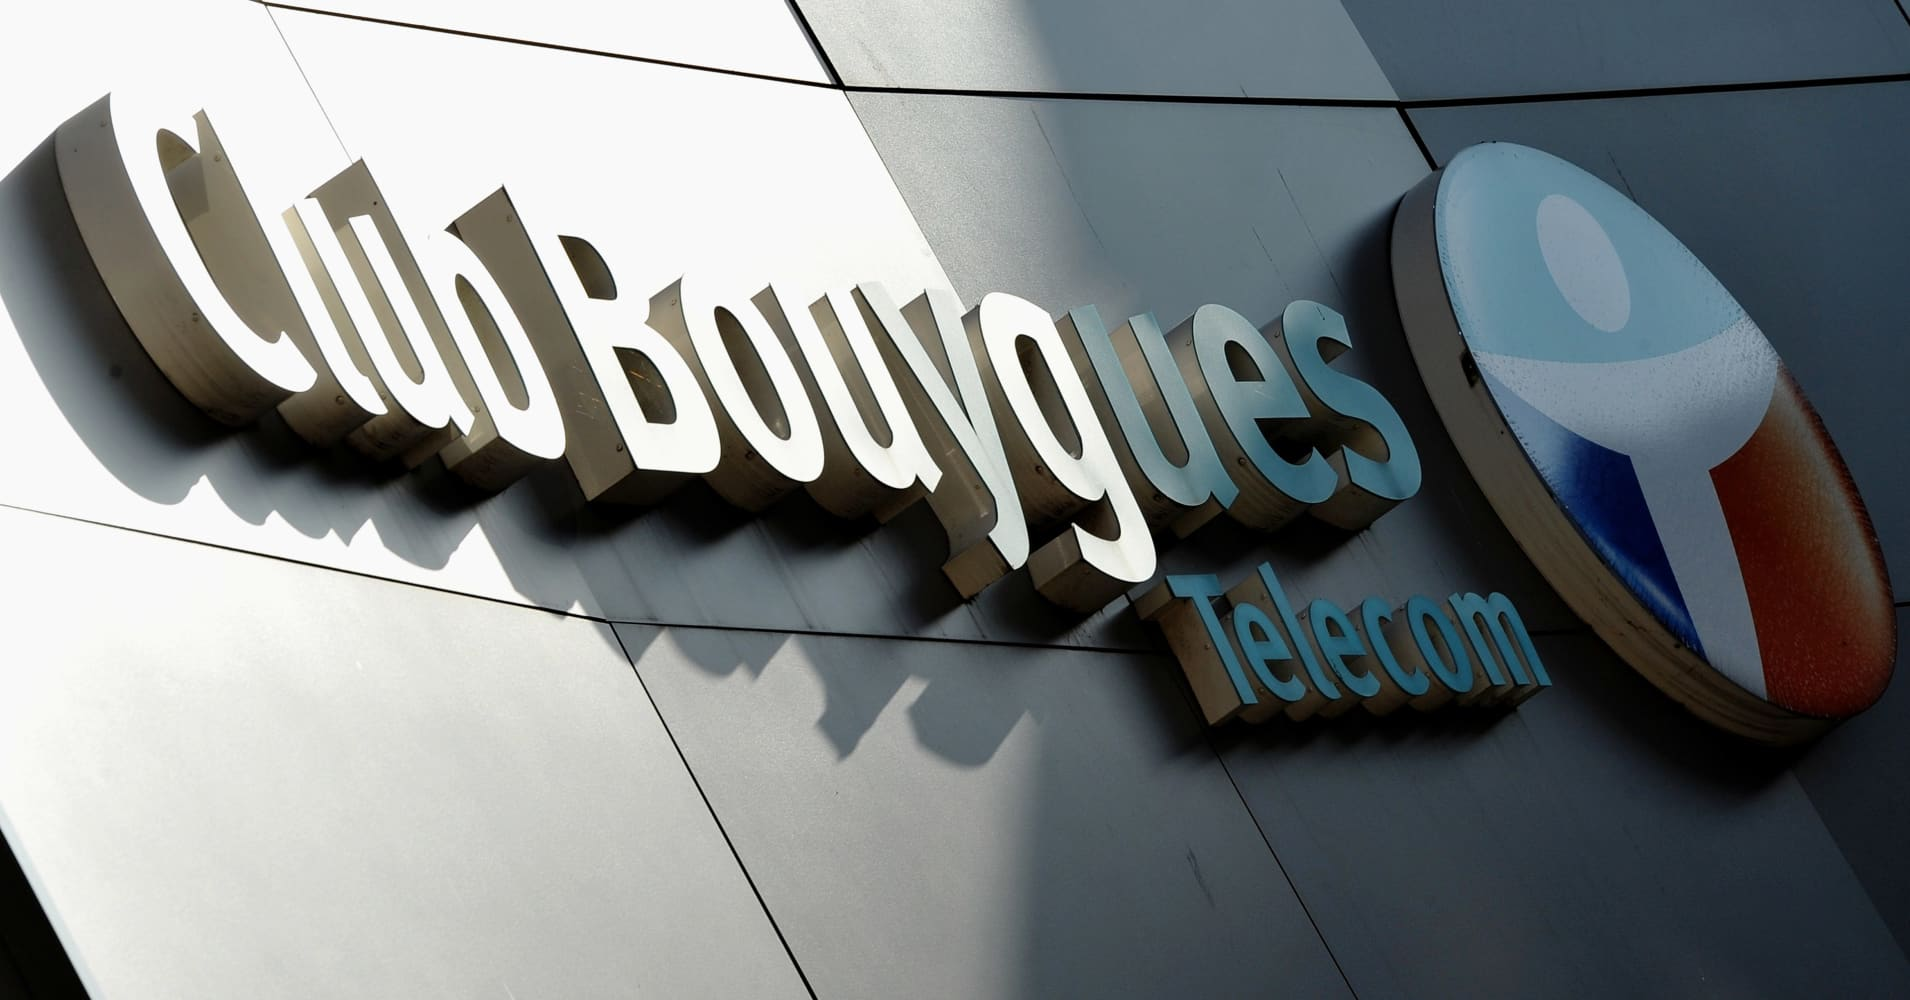 Bouygues keeps outlook as telecoms arms improves